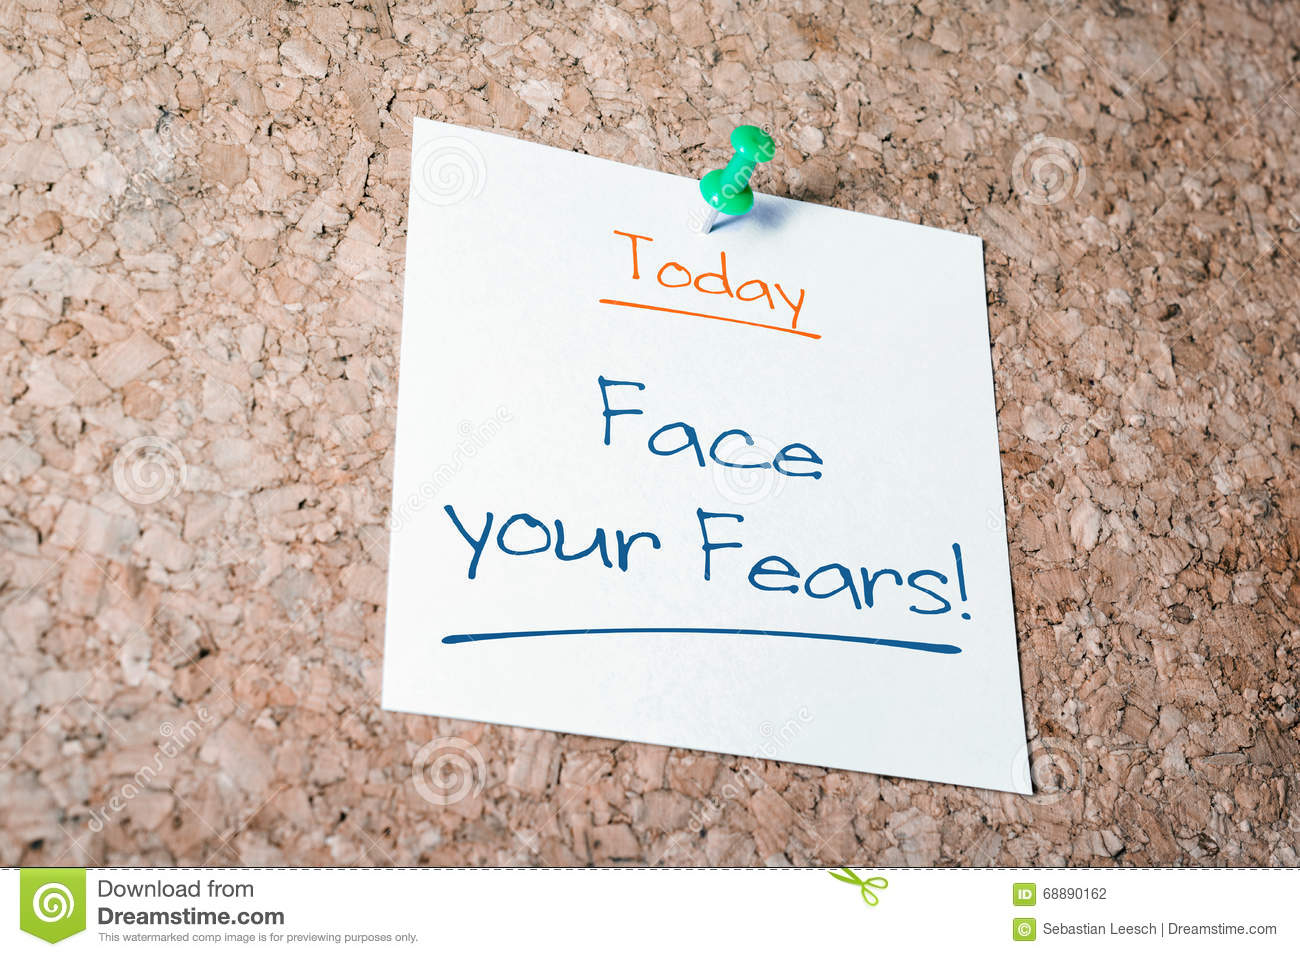 Face Your Fears Reminder For Today On Paper Pinned On Cork Board